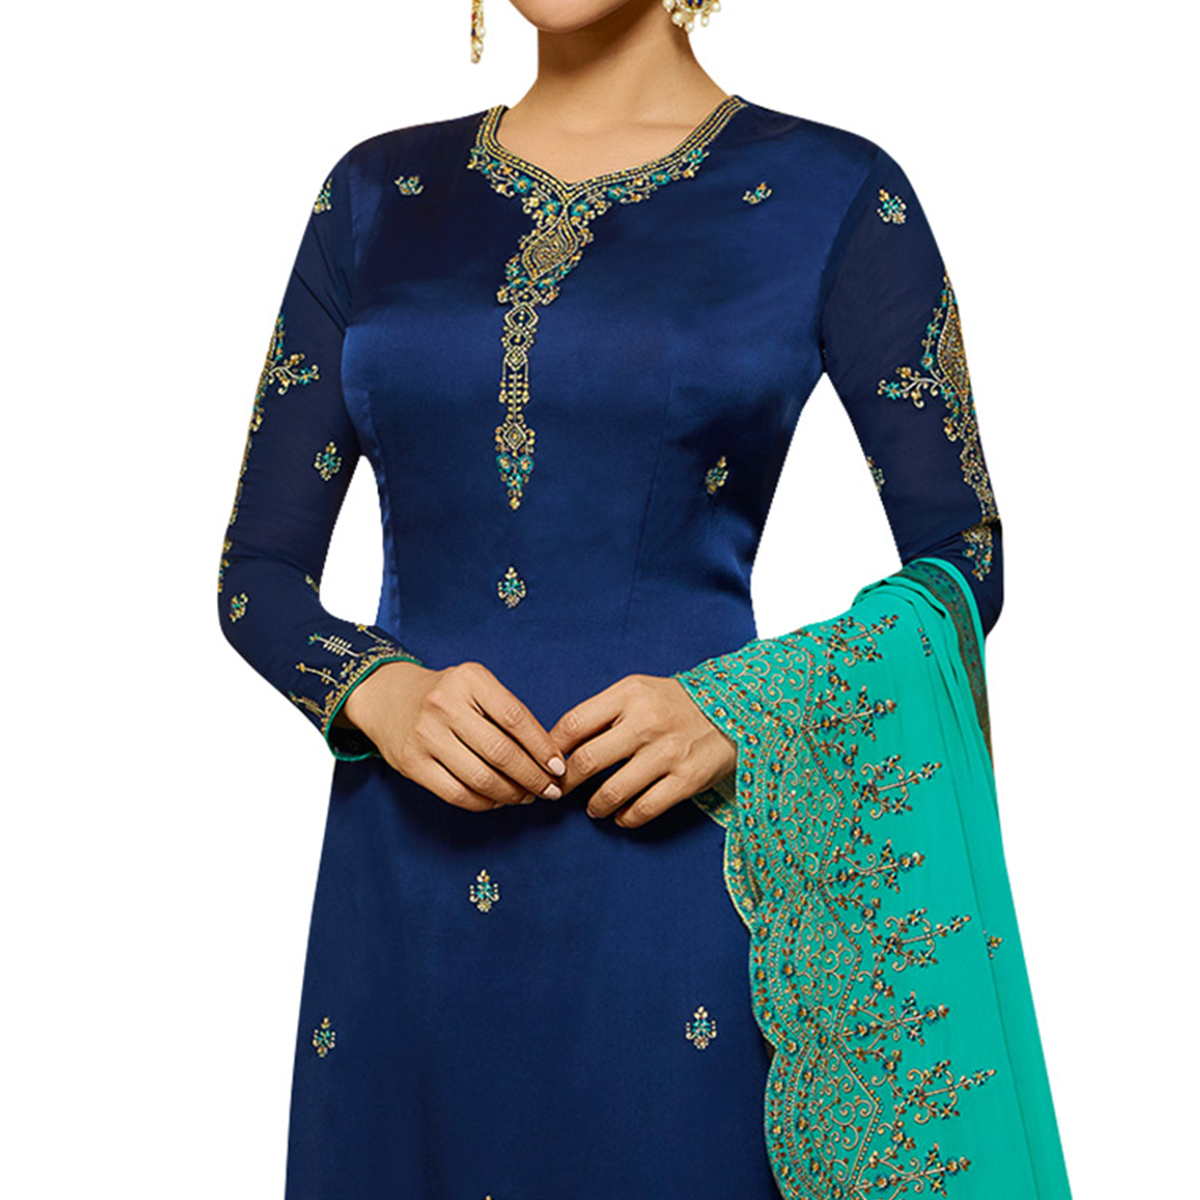 Groovy Blue Colored Partywear Embroidered Satin Georgette Salwar Suit